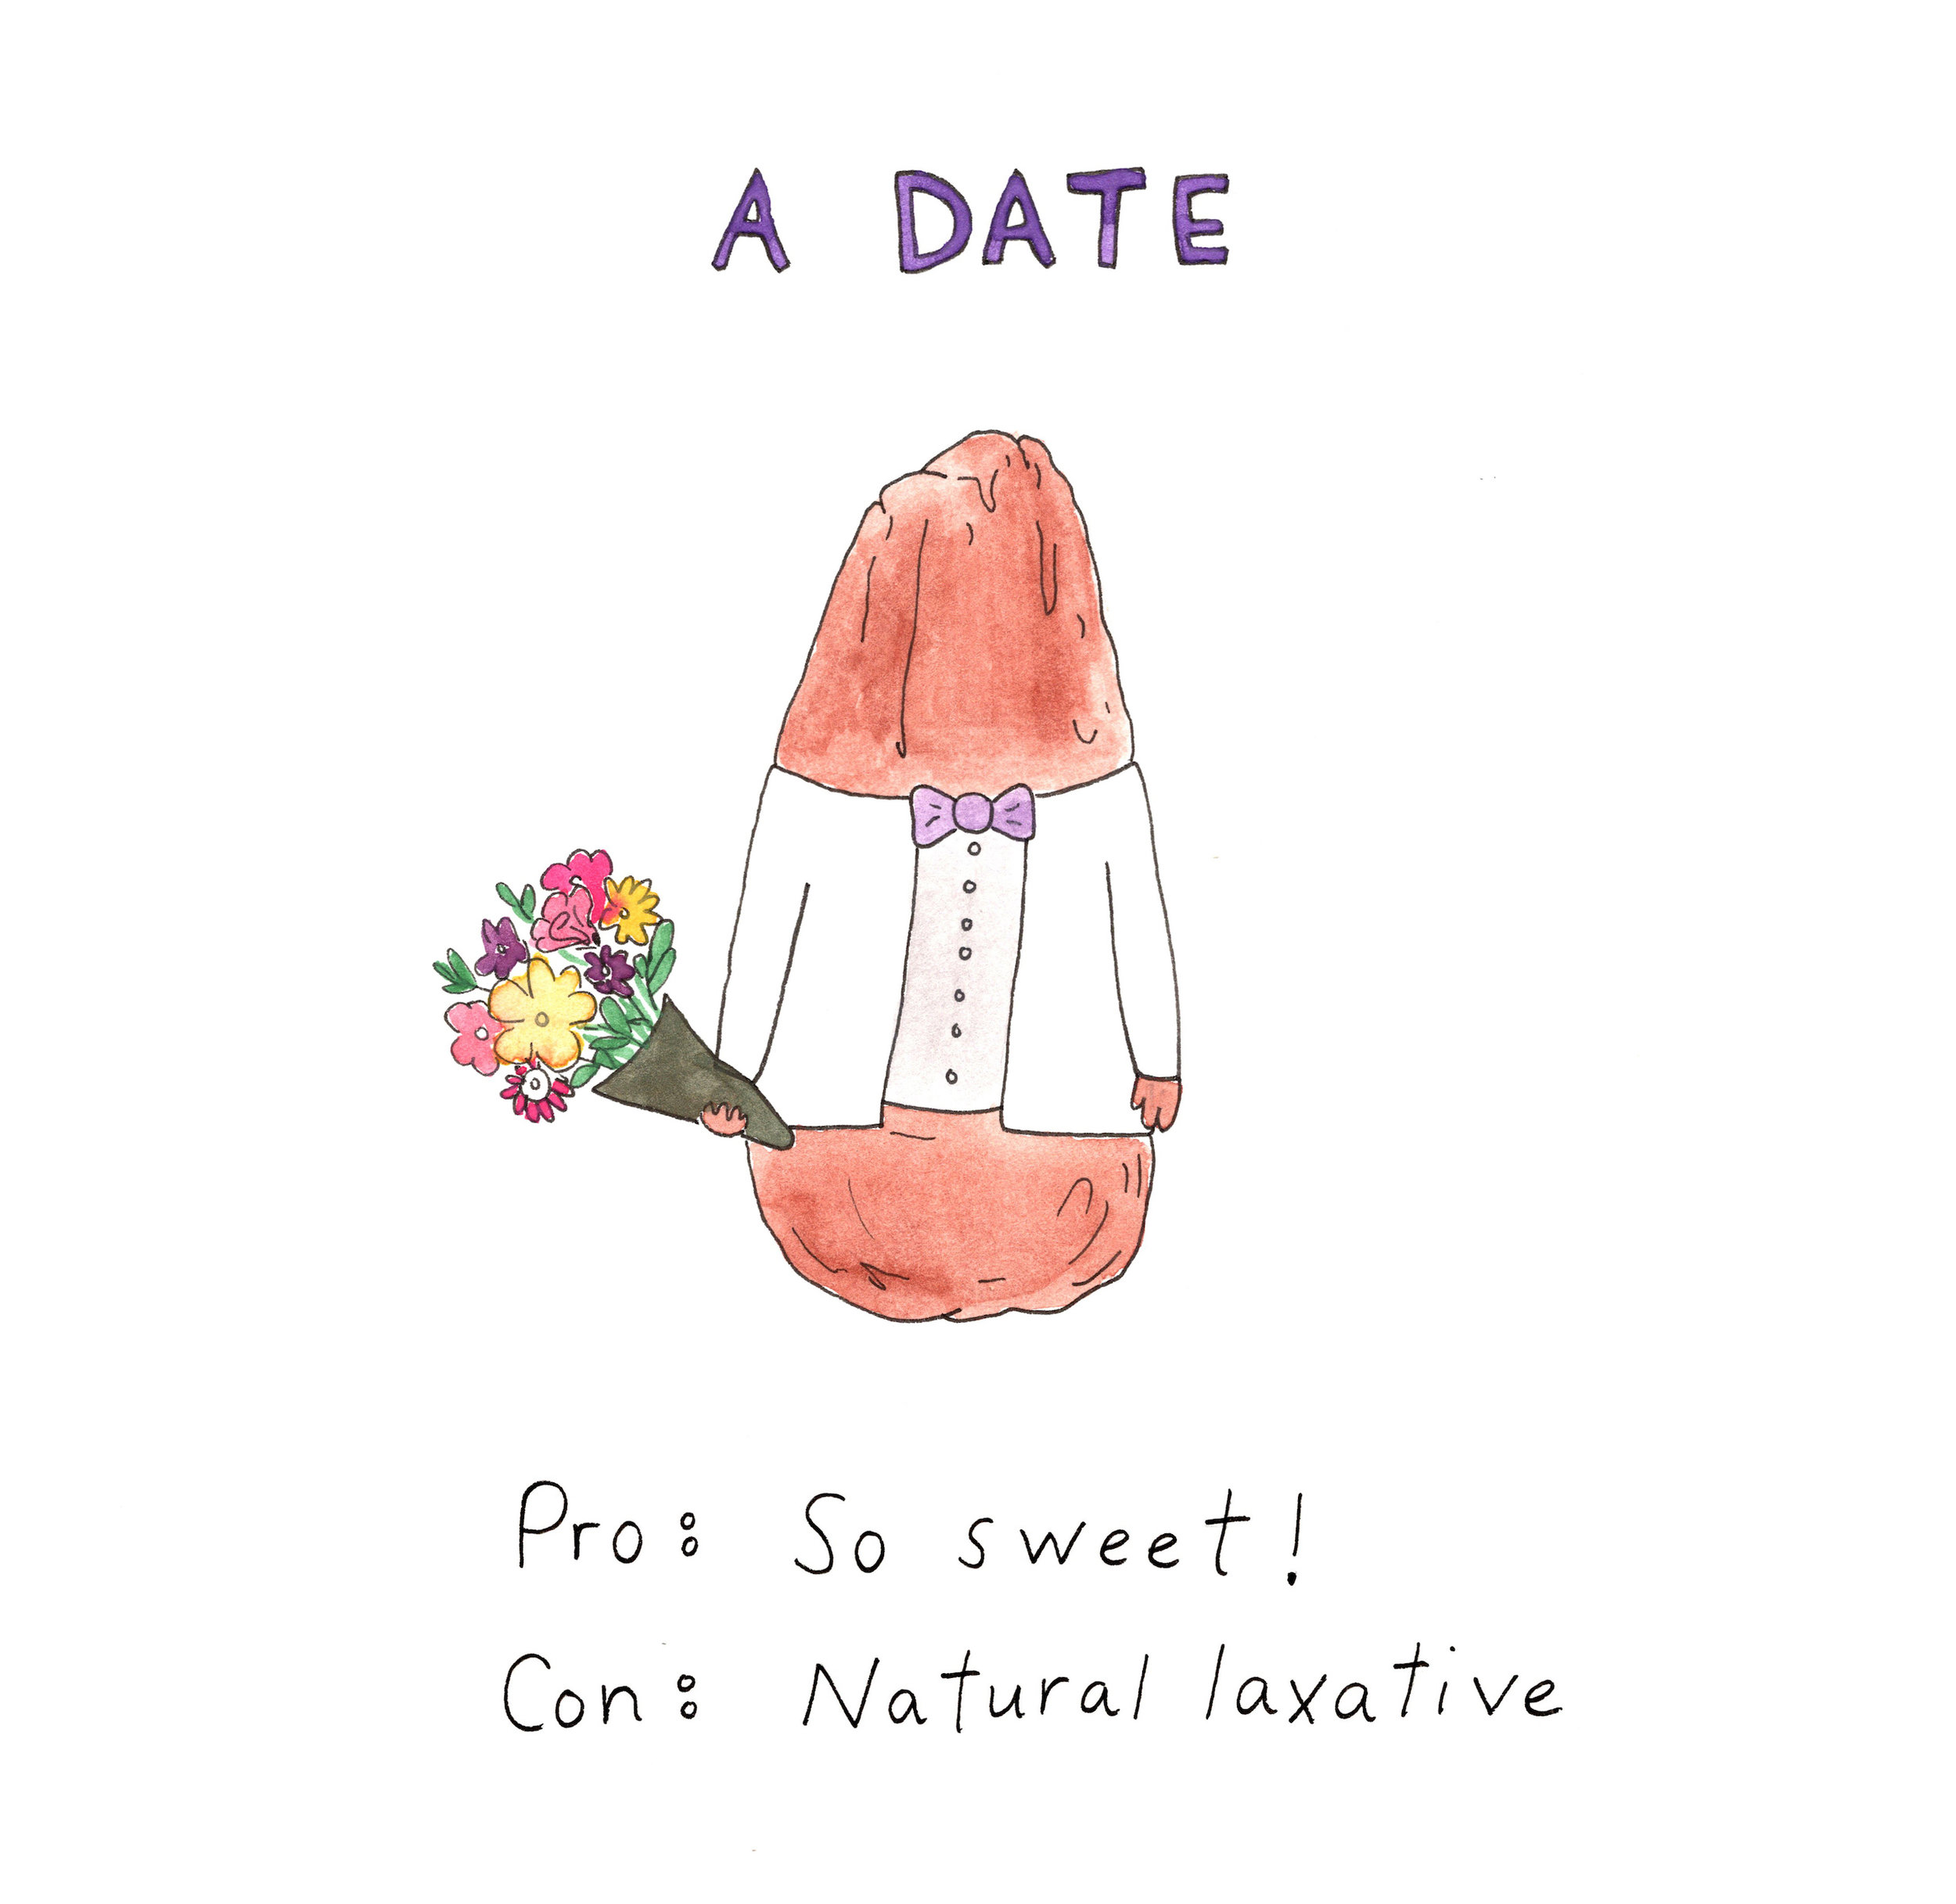 Potential Last-Minute Wedding Dates - The New Yorker